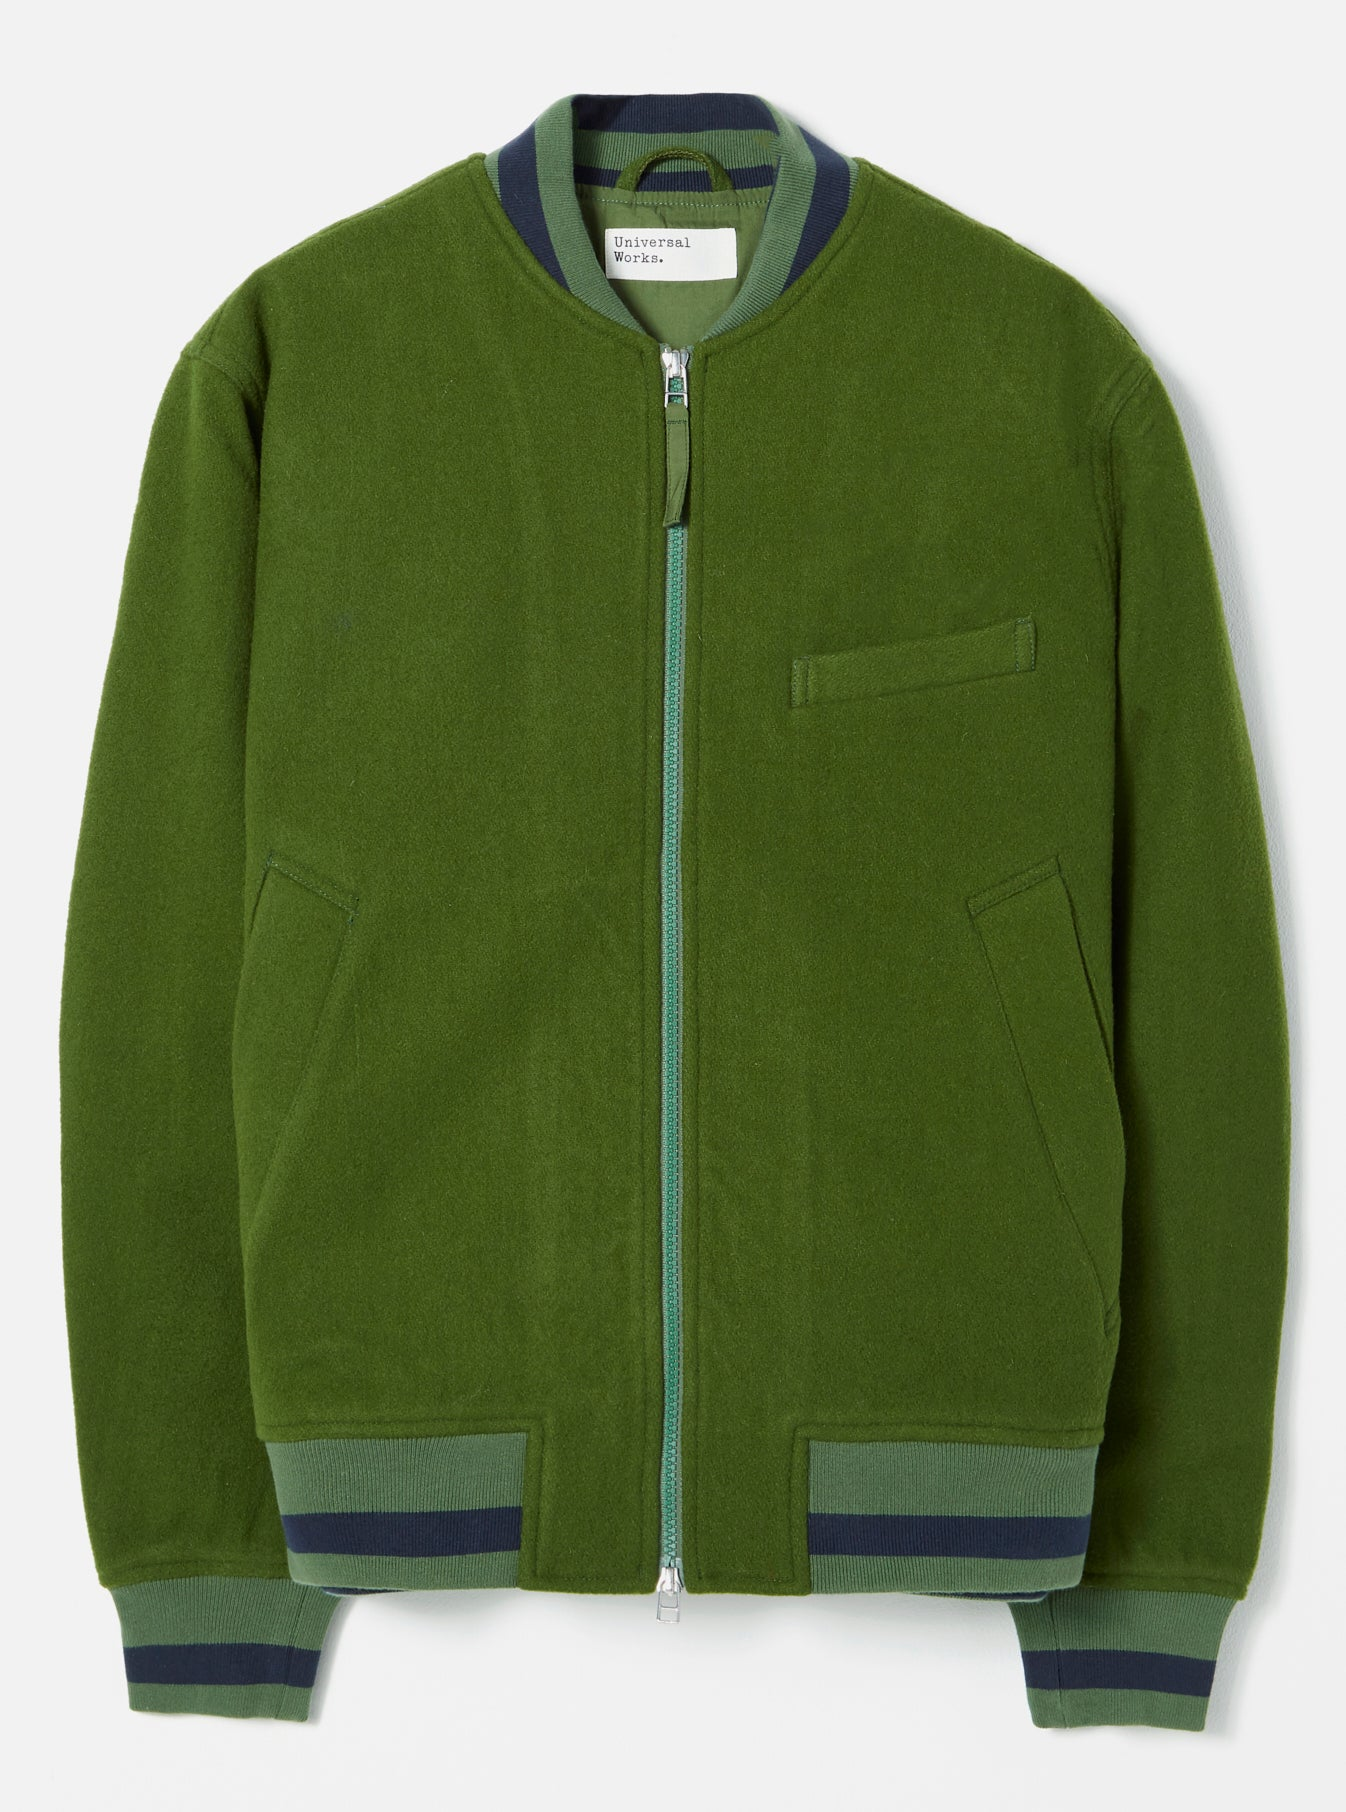 Universal Works Bomber Jacket in Green Mowbray